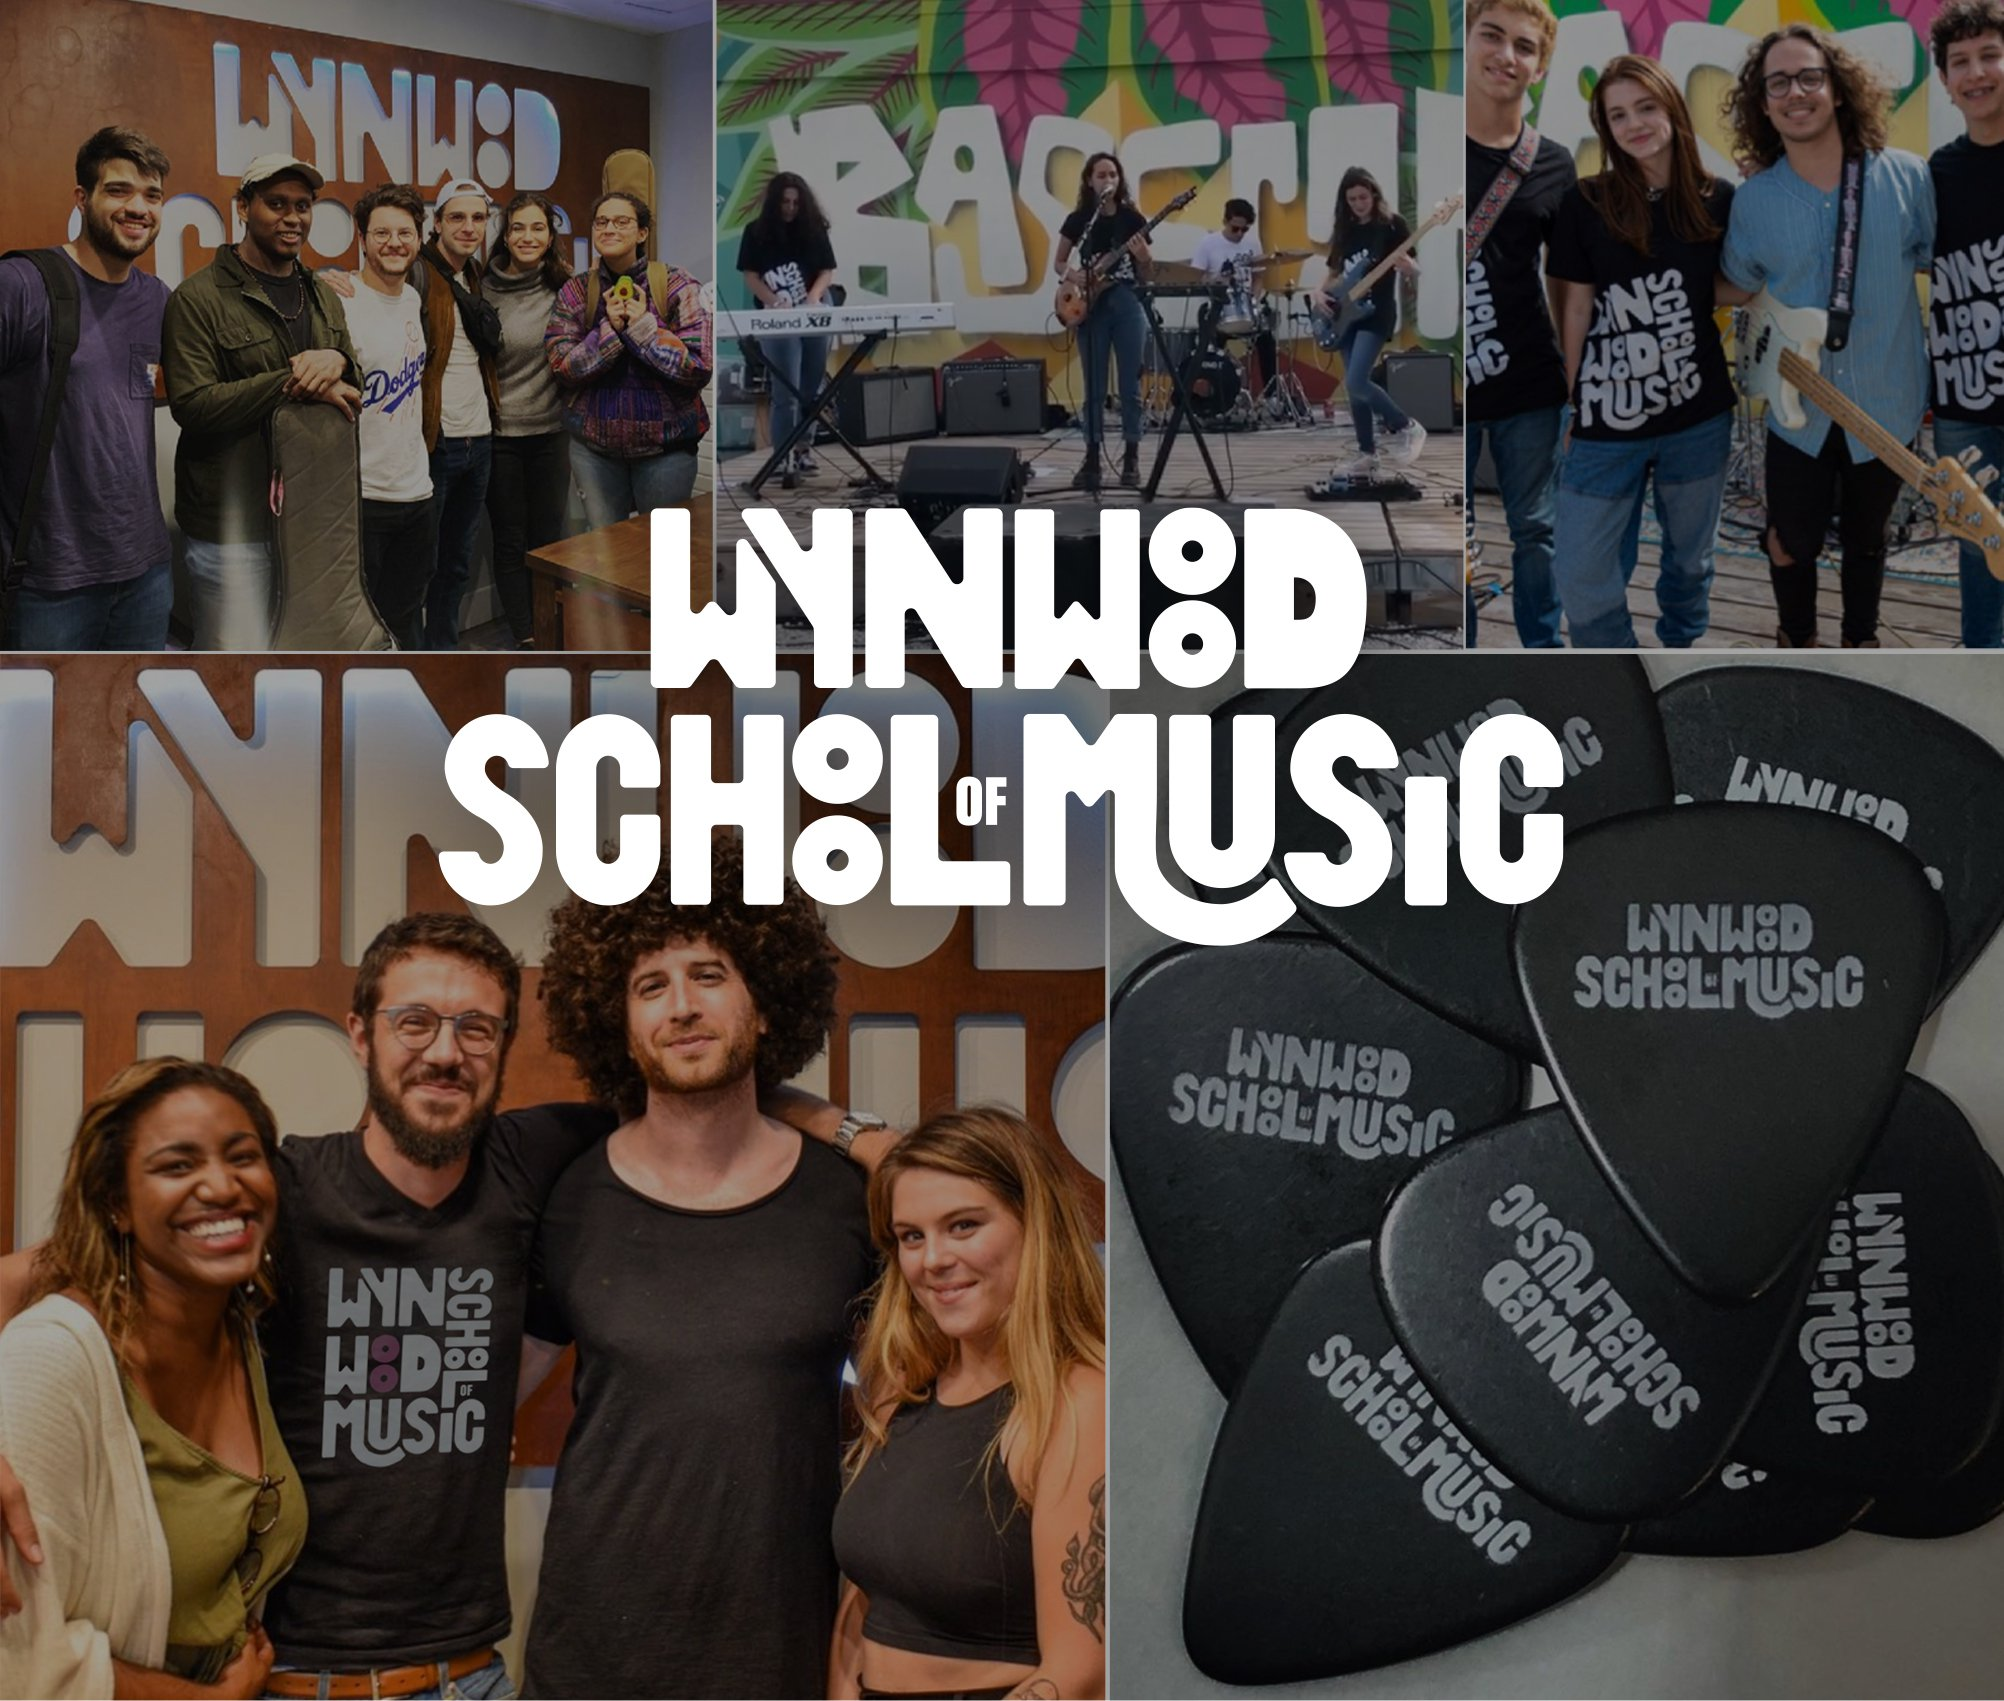 wynwood school of music logo with photo grid of students and teachers